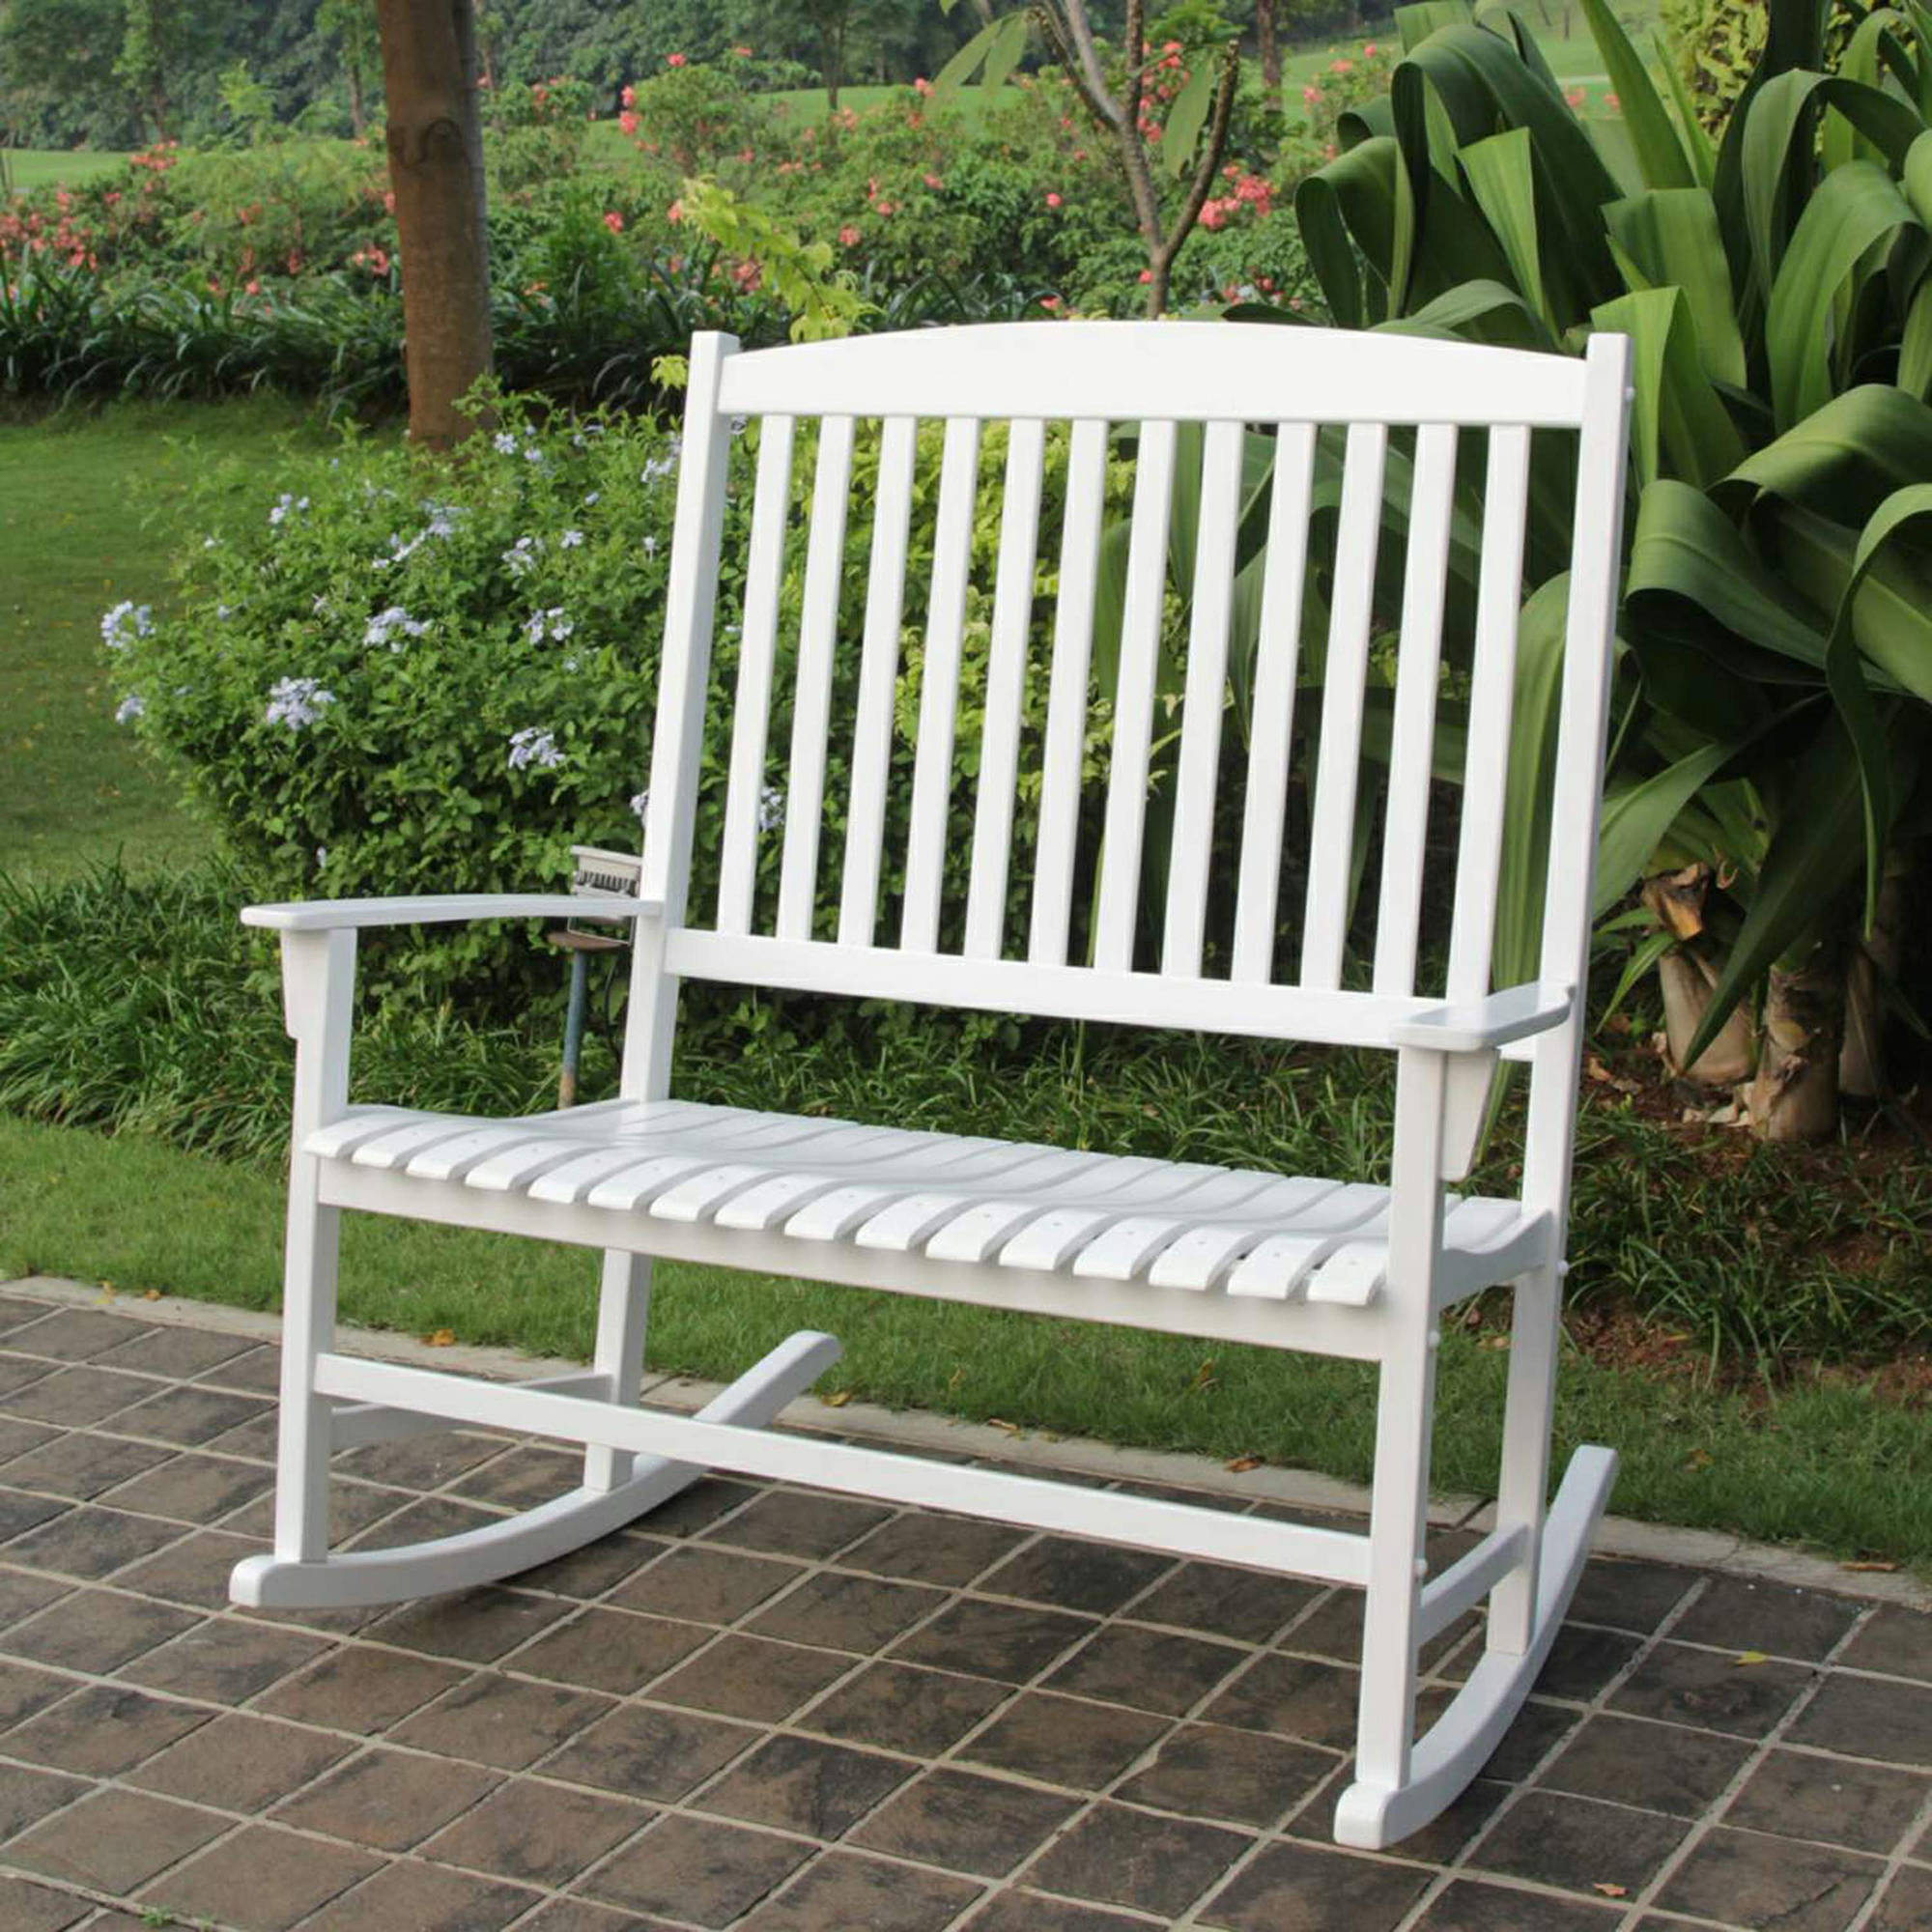 white wooden rocking chair. Mainstays Outdoor Double Rocking Chair White Solid Hardwood Wide Seat Seats 2 Wooden